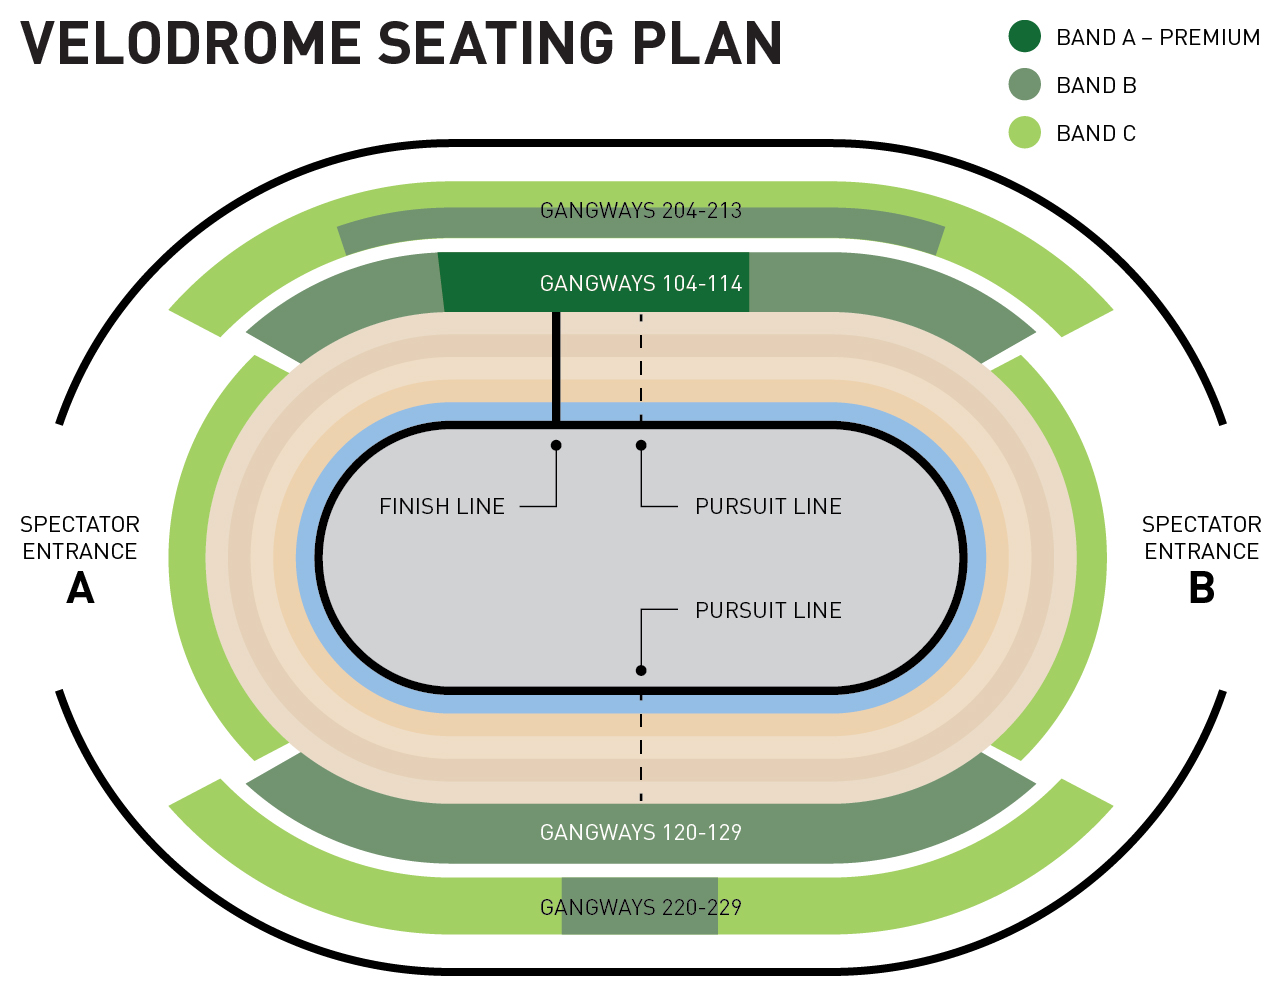 2016 UCI Track Cycling World Championships seating plan